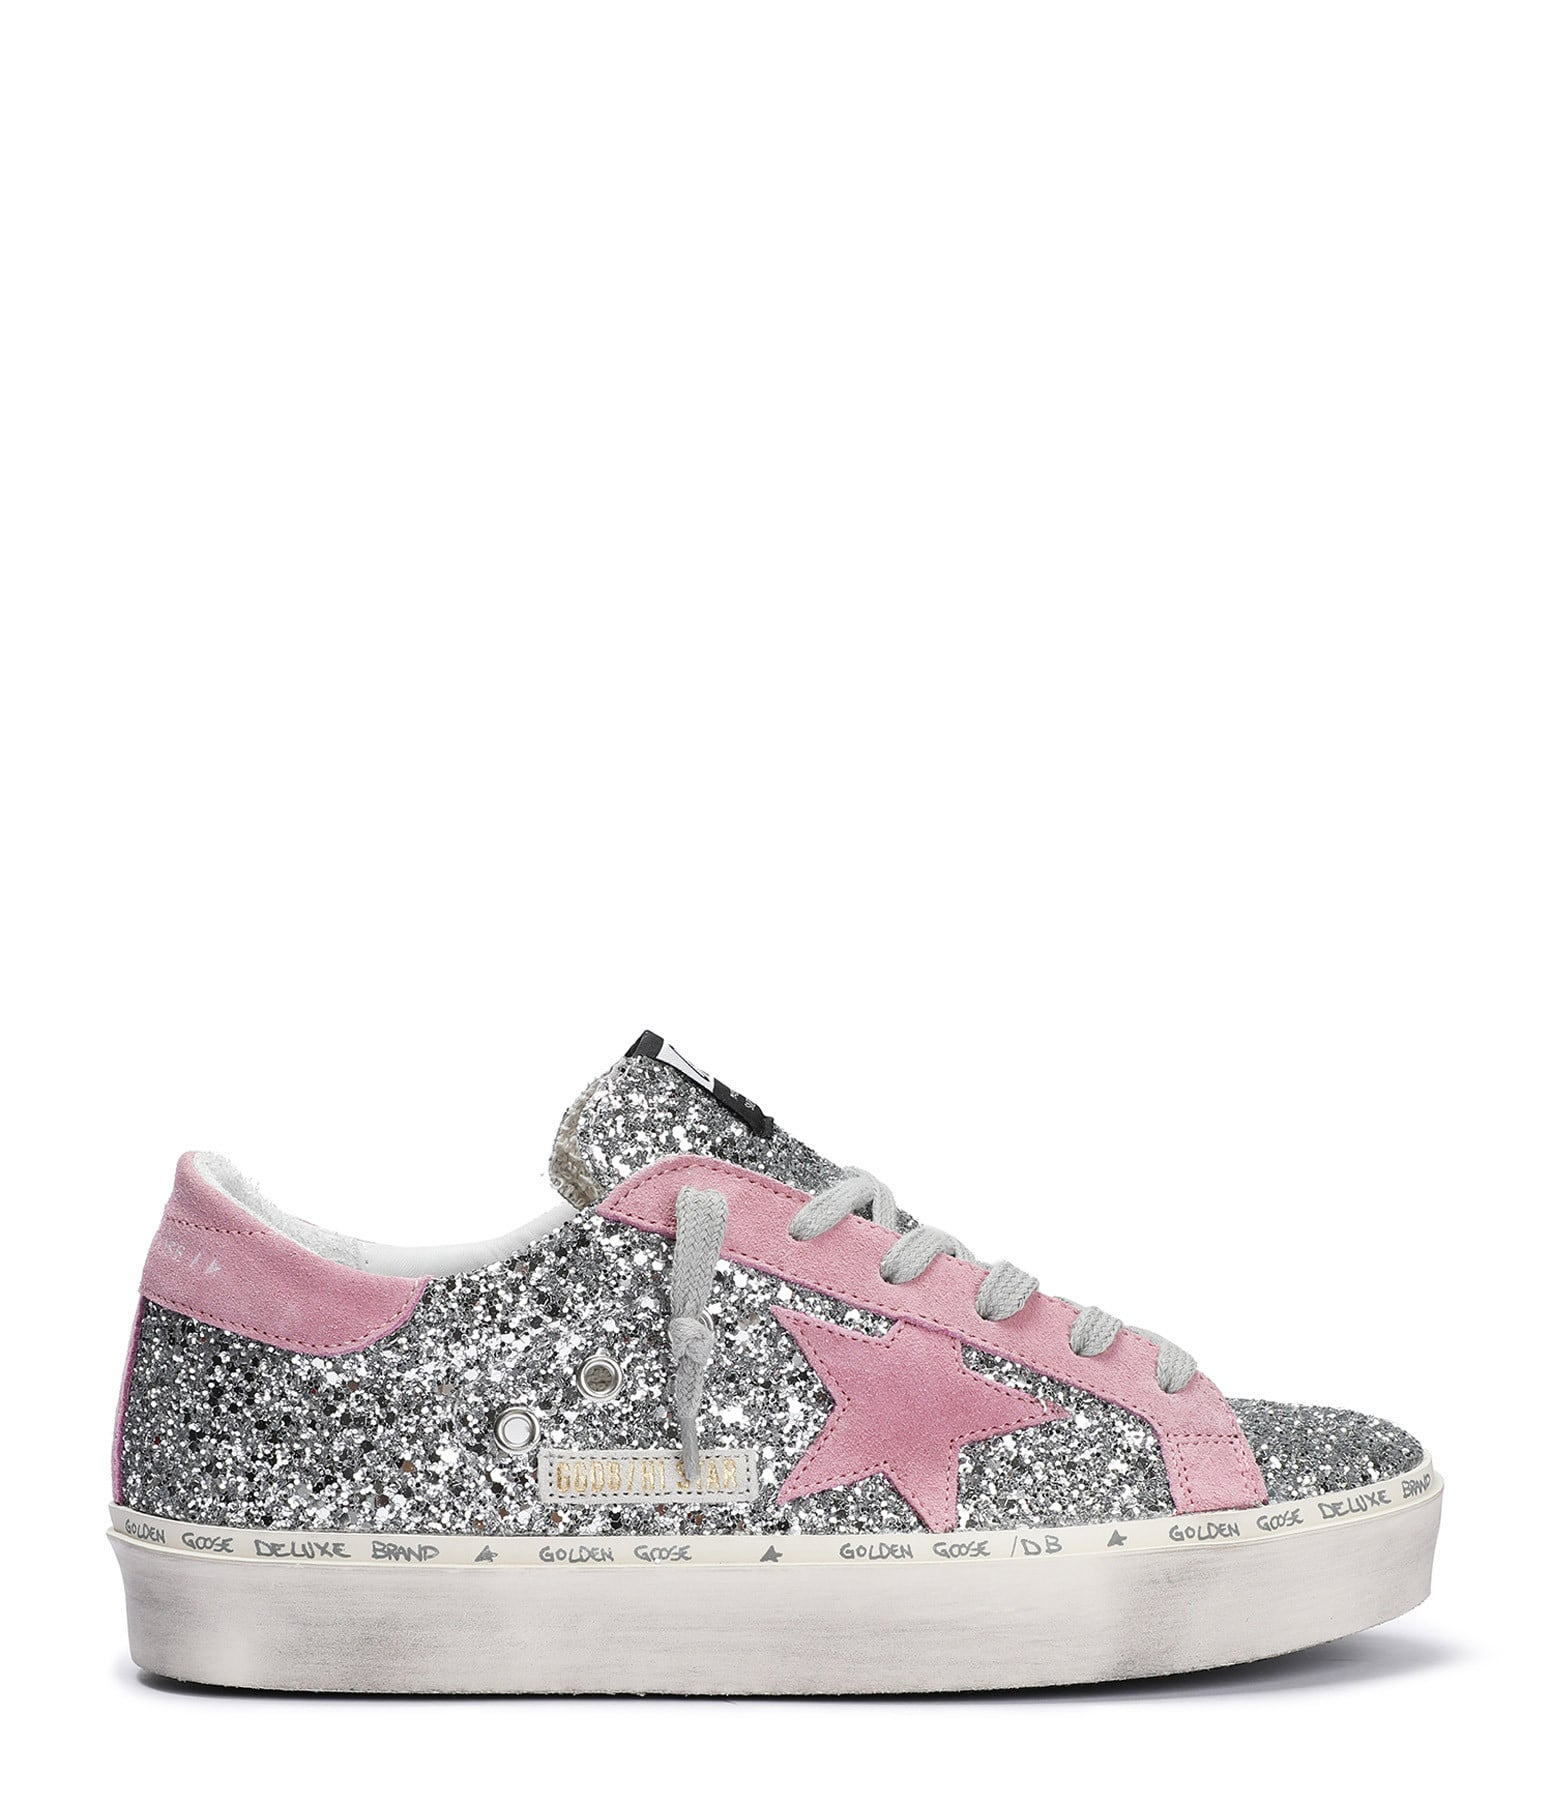 GOLDEN GOOSE - Baskets Hi Star Paillettes Cuir Argenté Rose